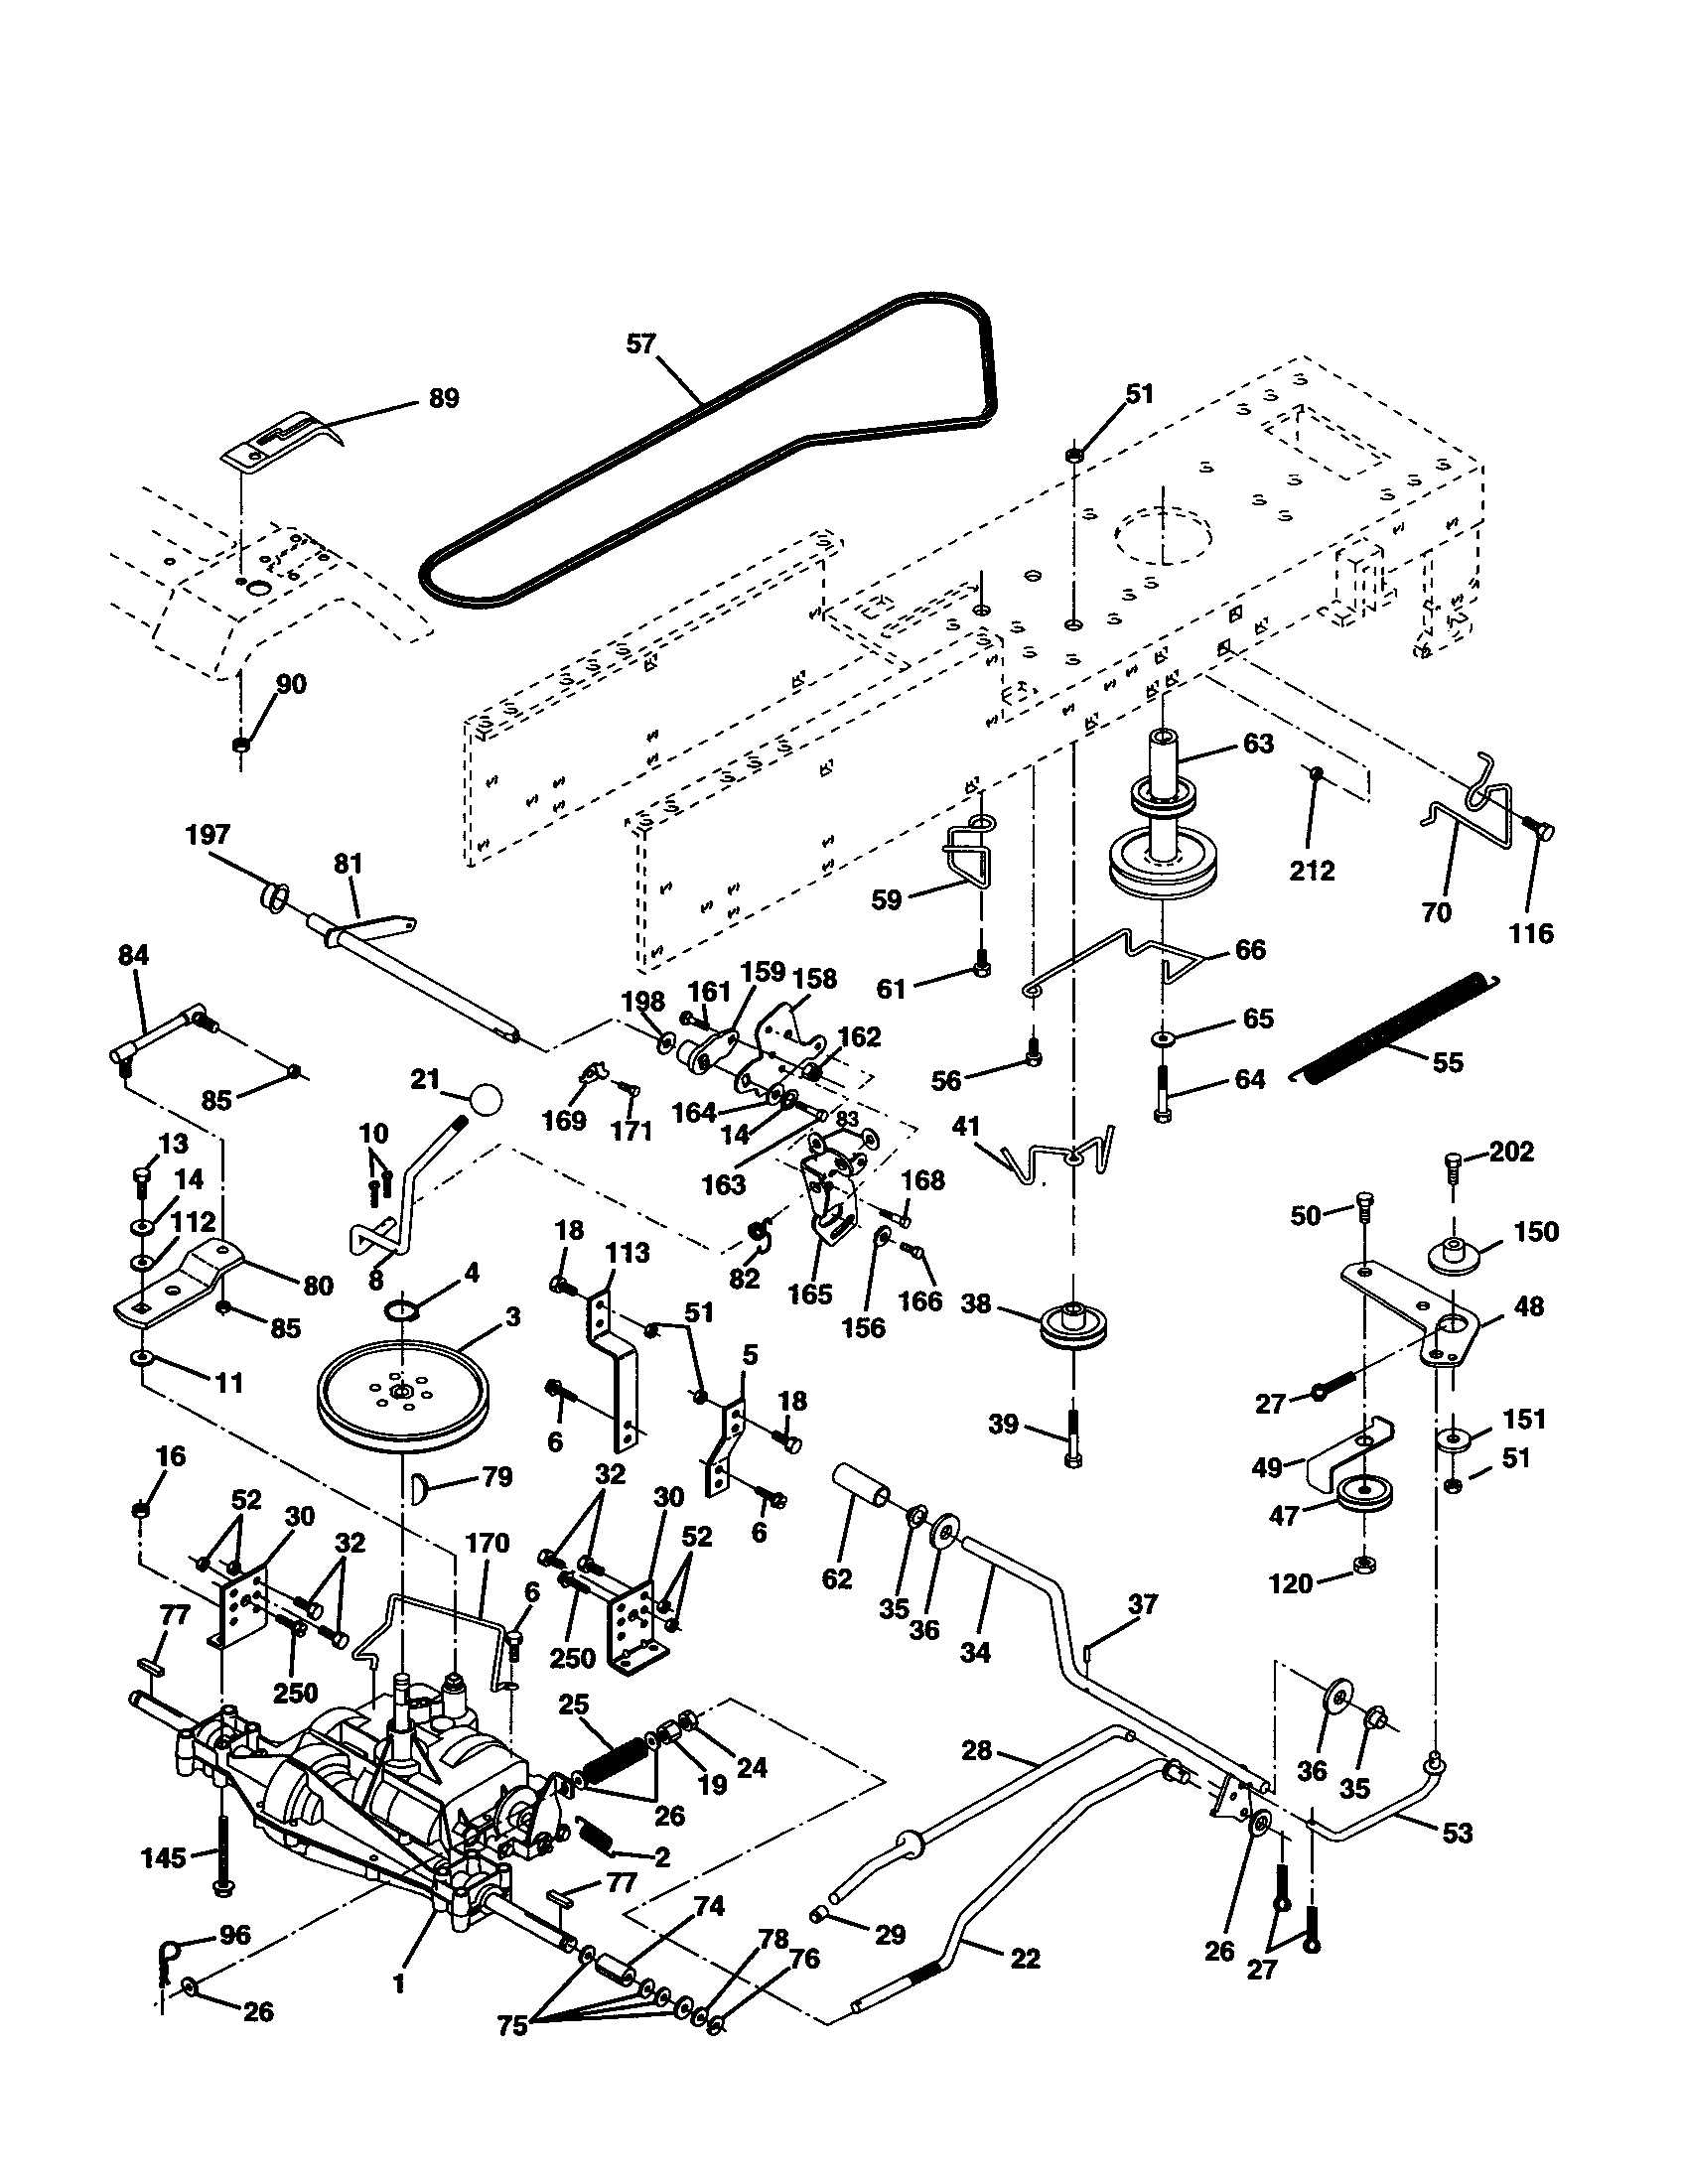 riding lawn mower wiring on rally lawn tractor wiring diagram